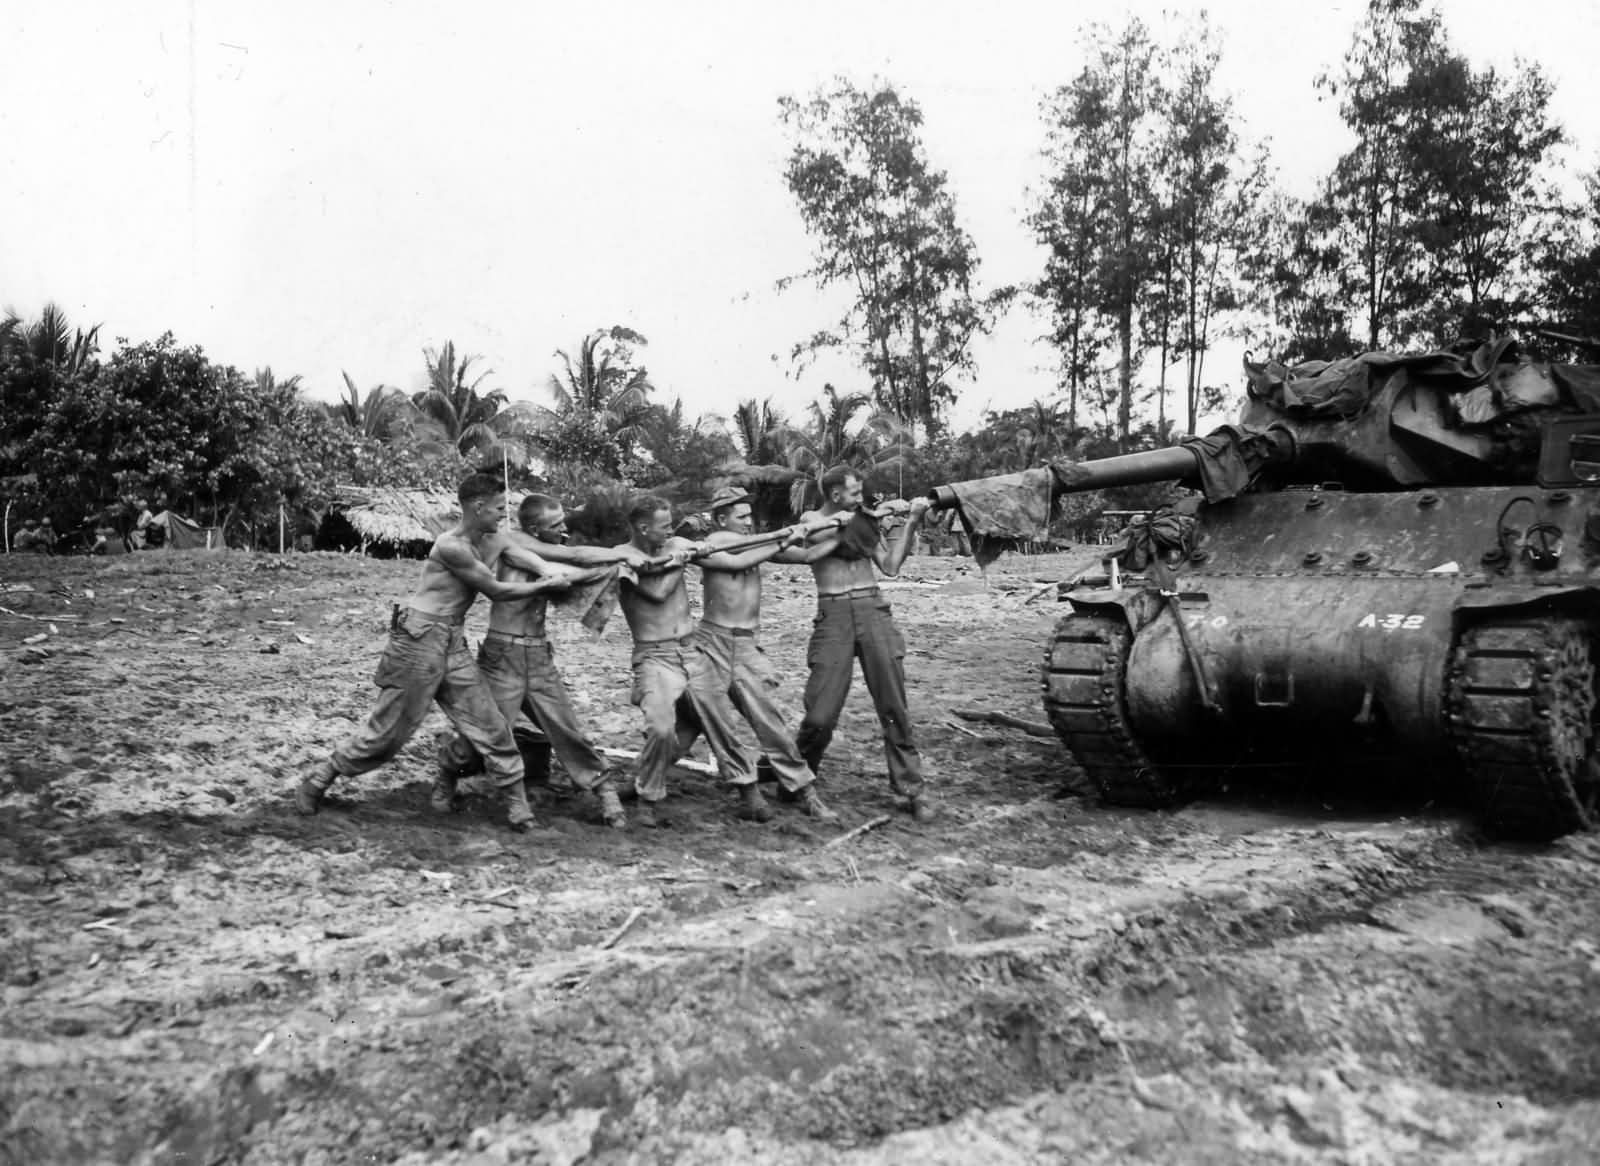 M10_32nd_Infantry_Division_632nd_Tank_Destroyer_Battalion_At_Aitape